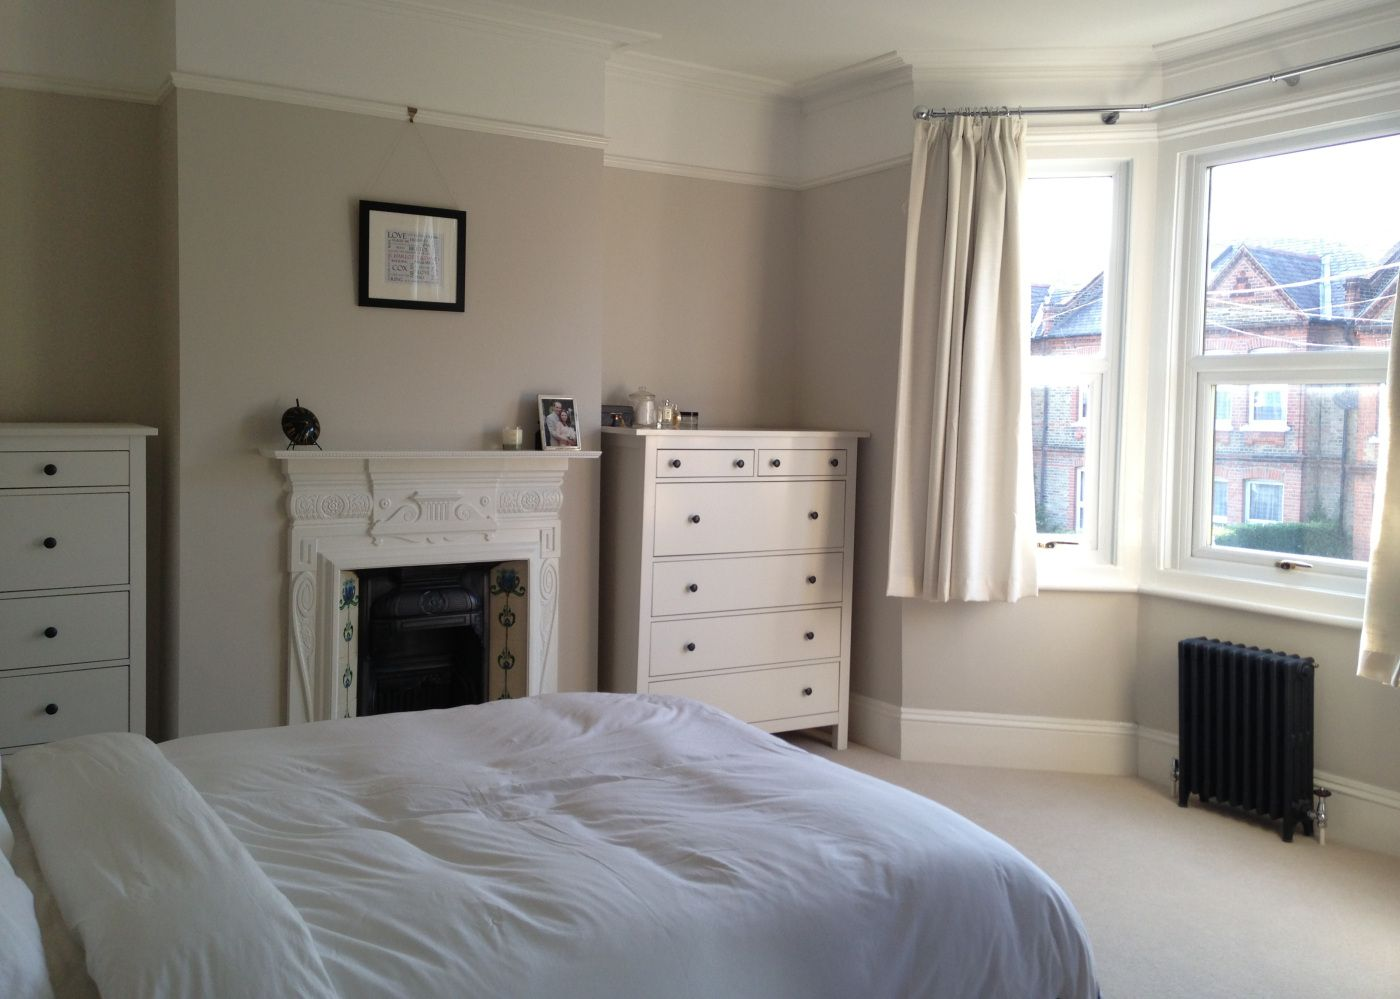 Dulux Egyptian Cotton | Bedroom colors, Room colors ...